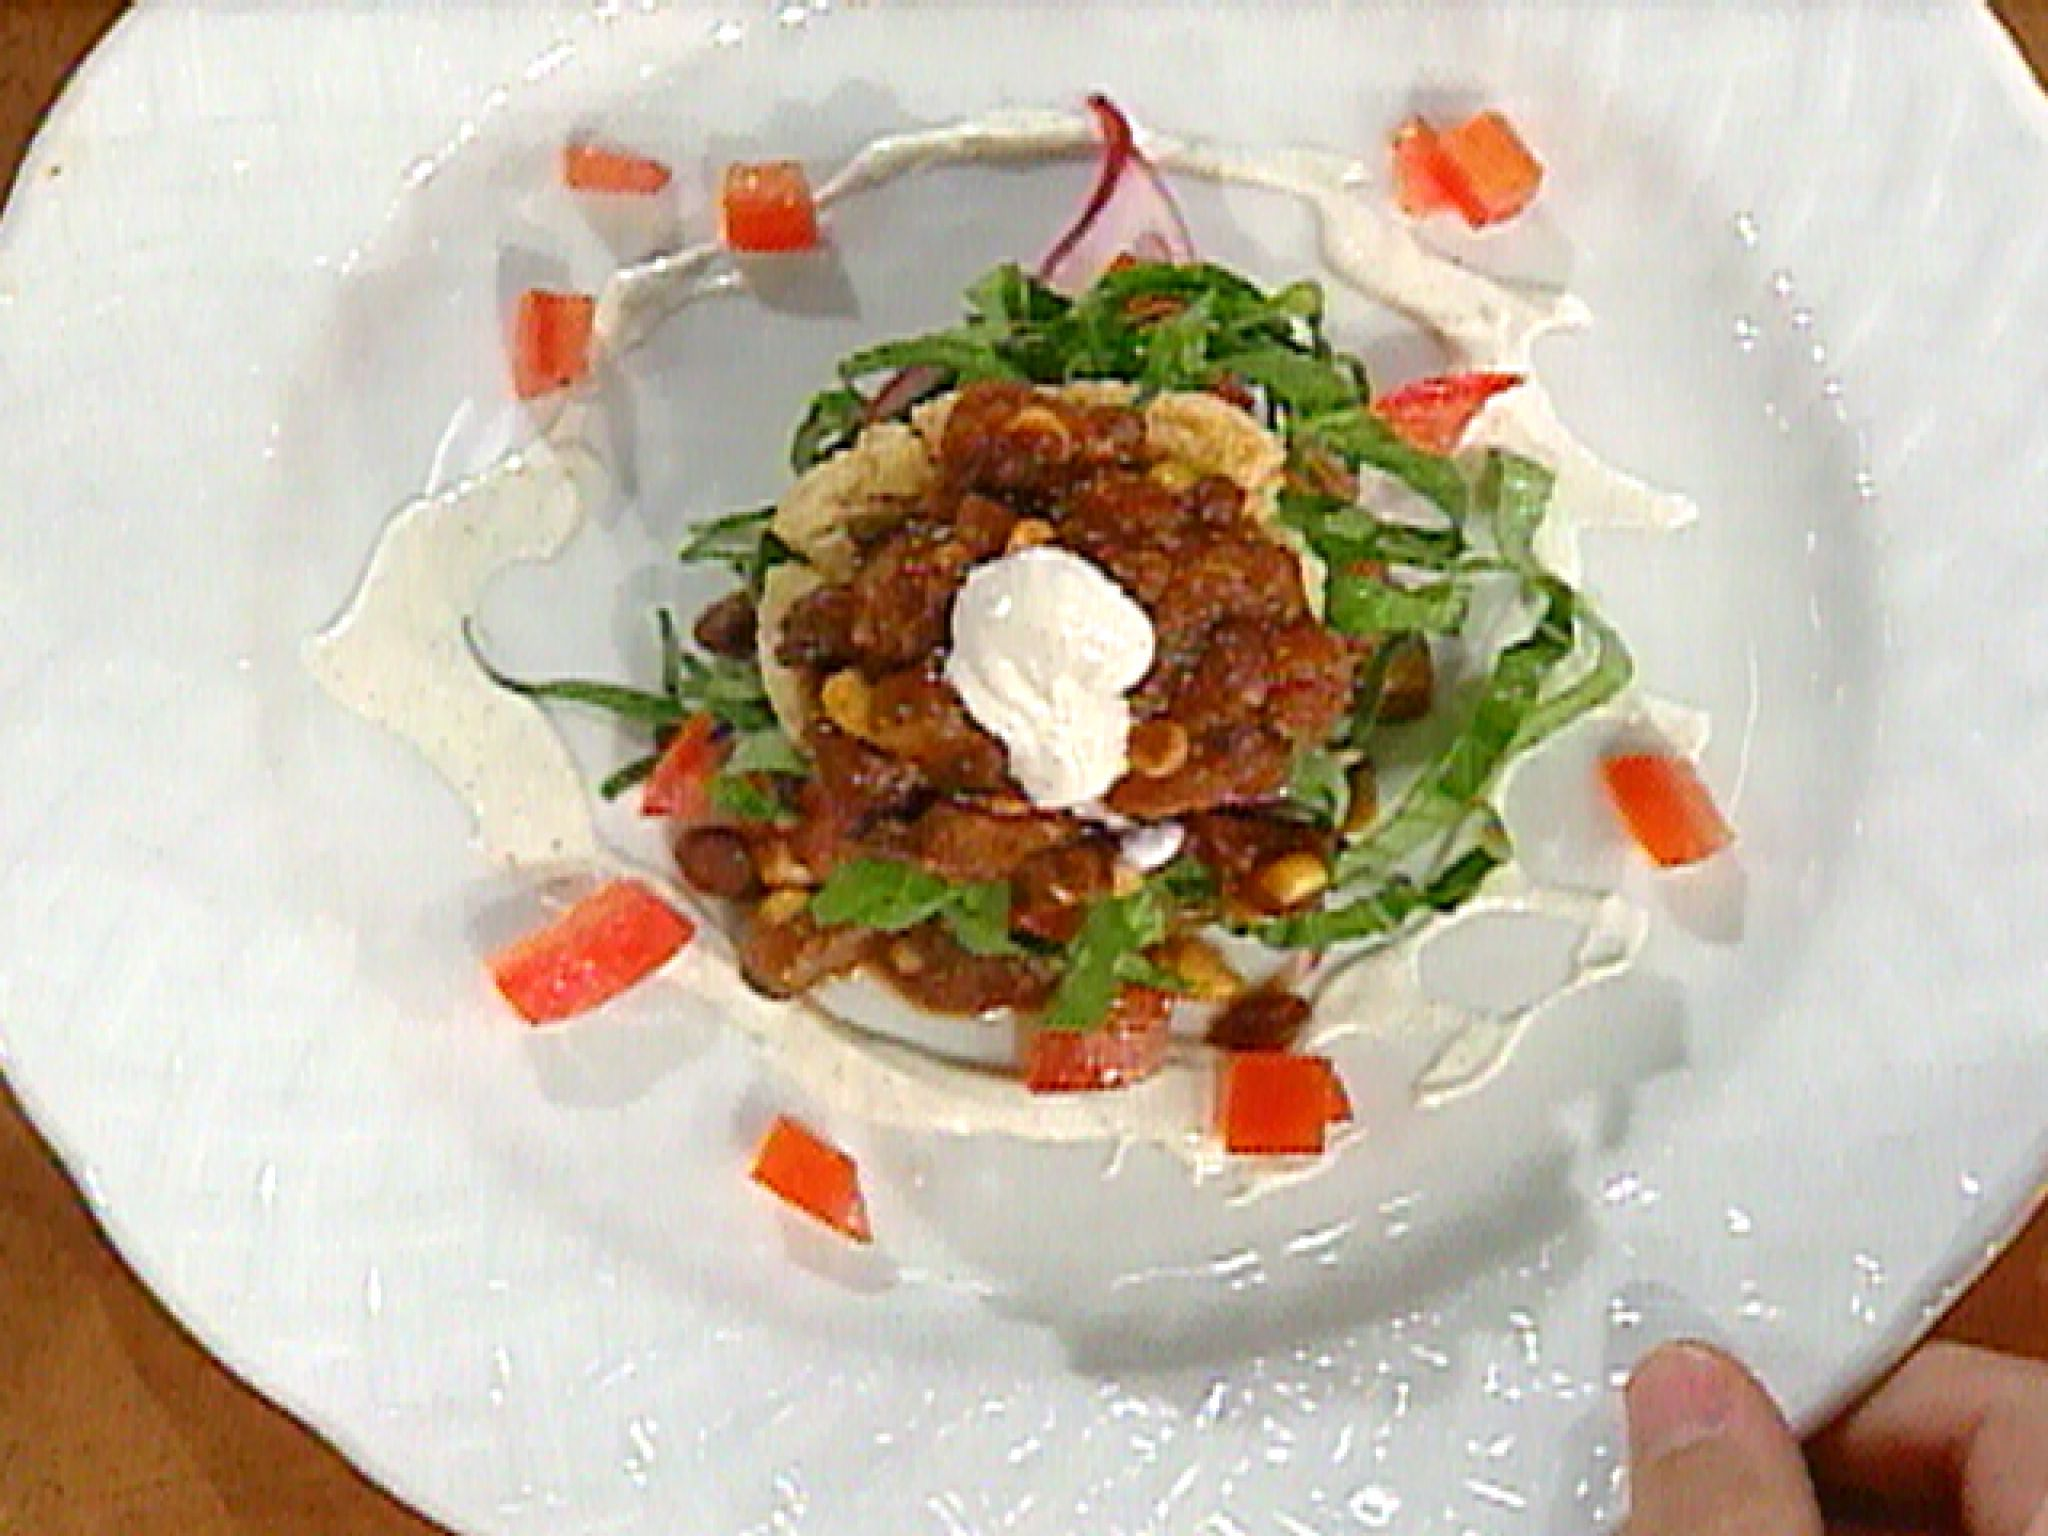 Vegetarian chili masa cake stacks recipe from emeril lagasse via recipes recipes for vegetariansvegetarian chiligood recipeschilefood networksalad forumfinder Image collections